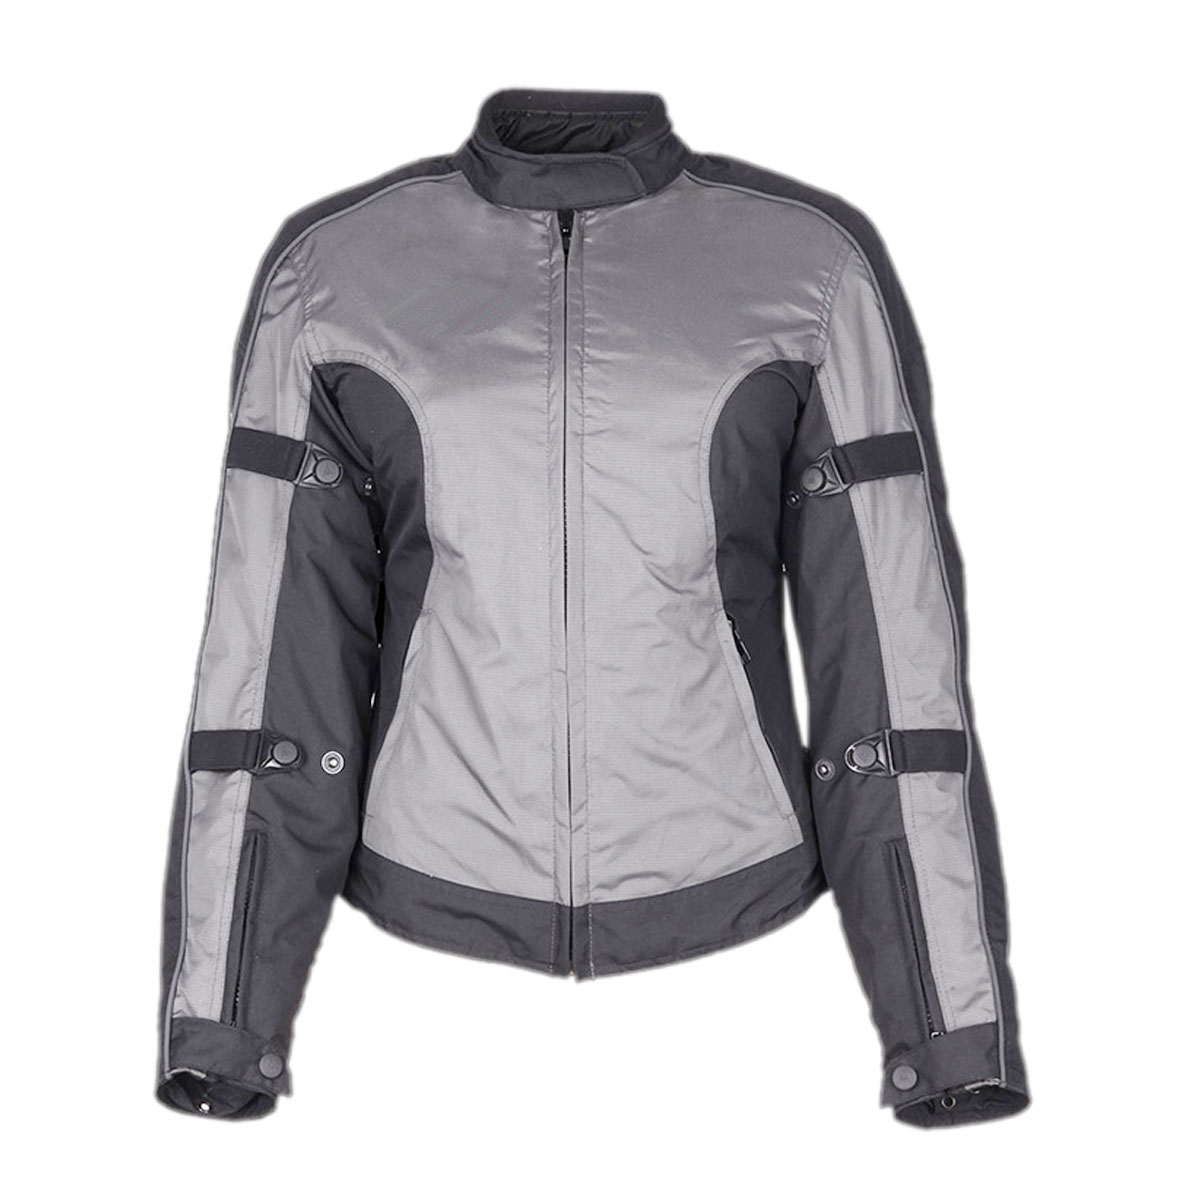 GREY FEMALE CORDURA JACKET